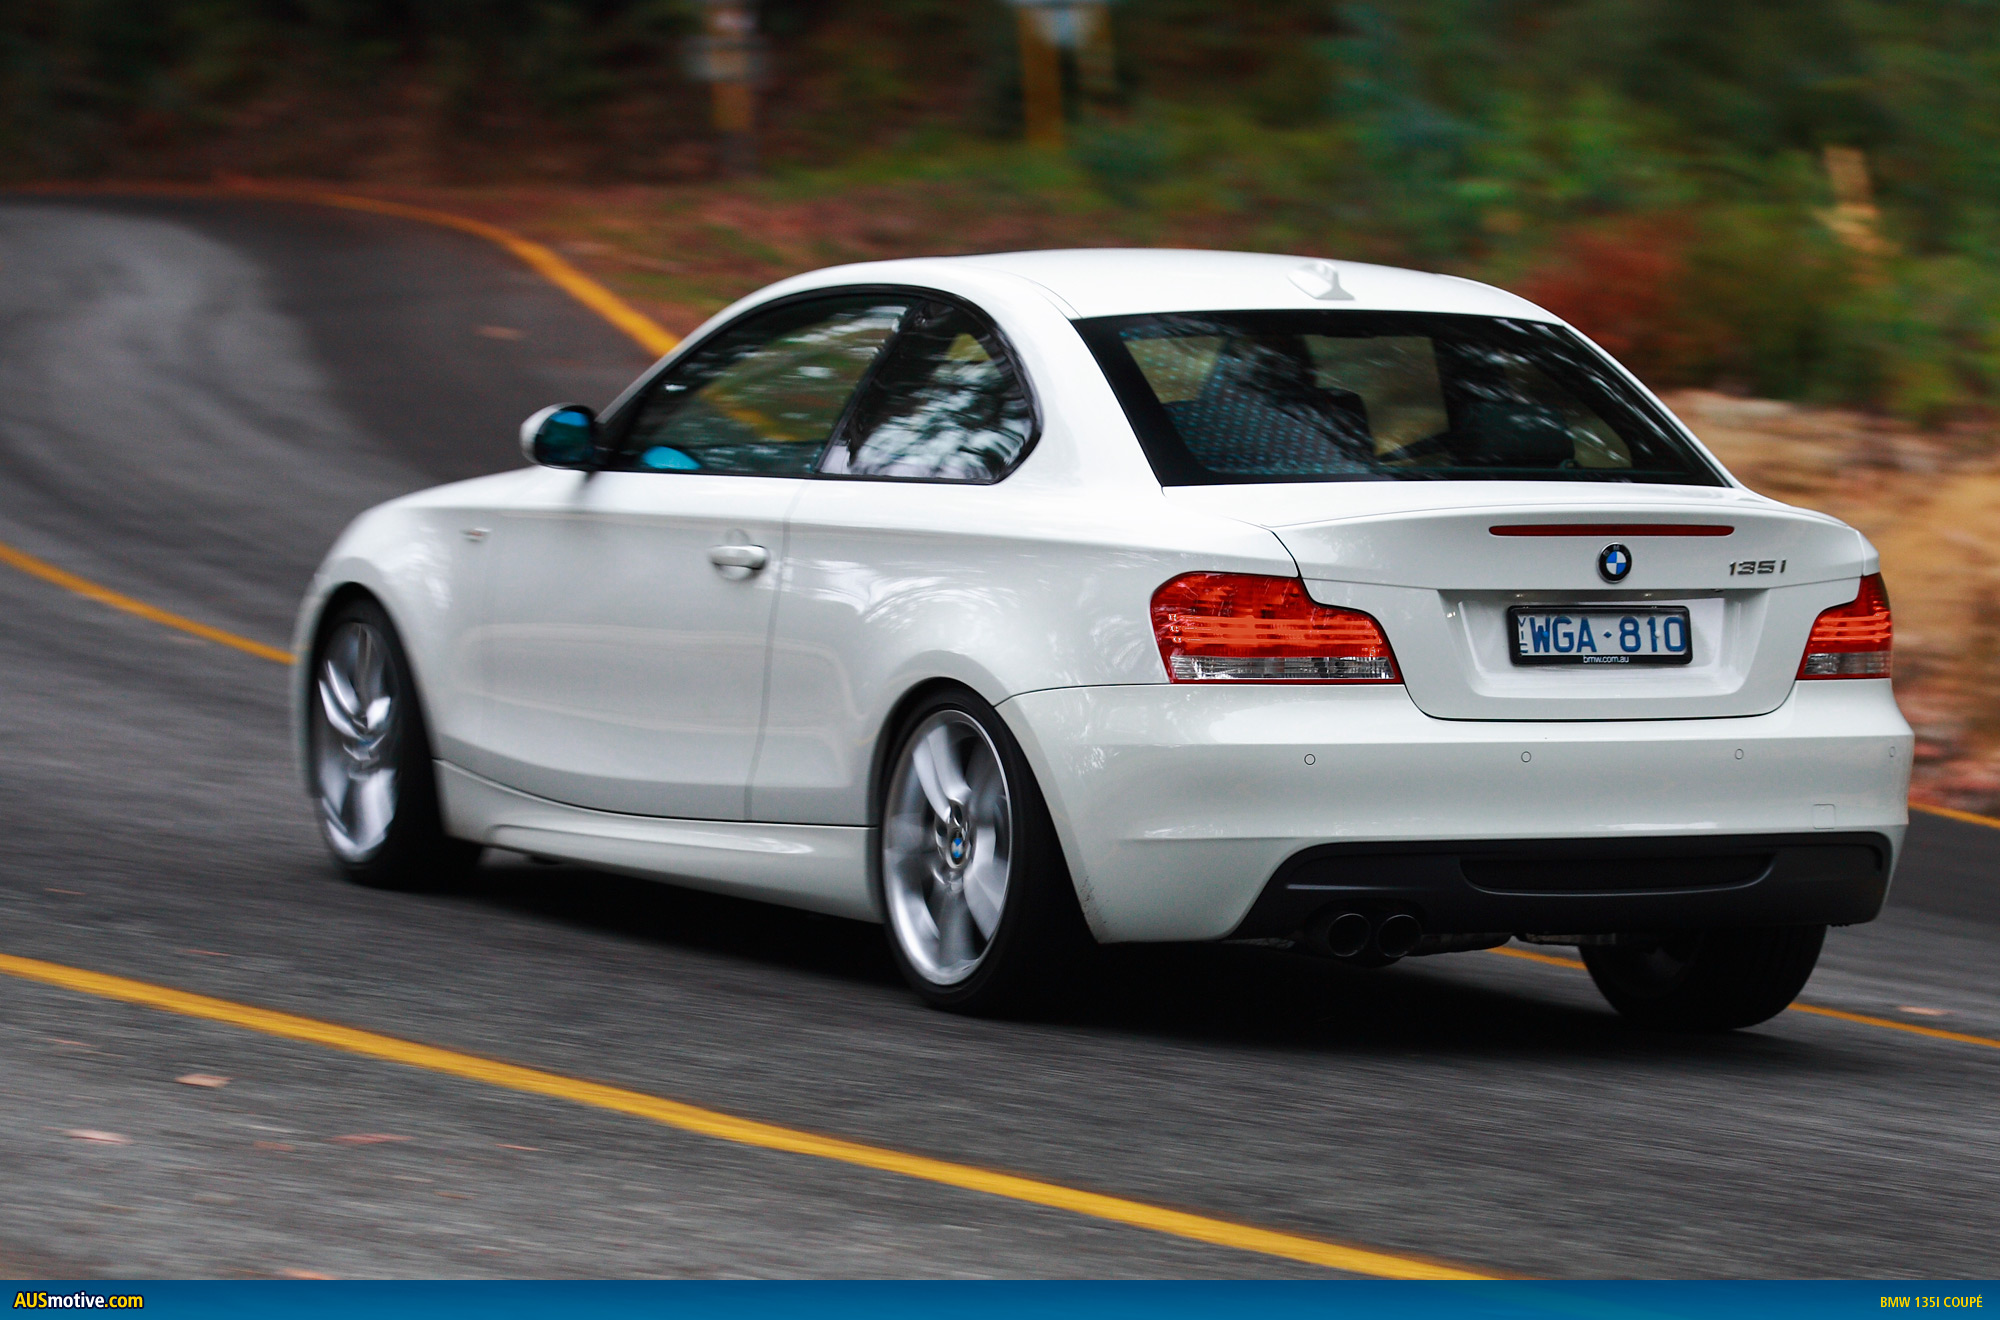 BMW 135i Coupe. For me, though, the S3 was just more fun to drive.